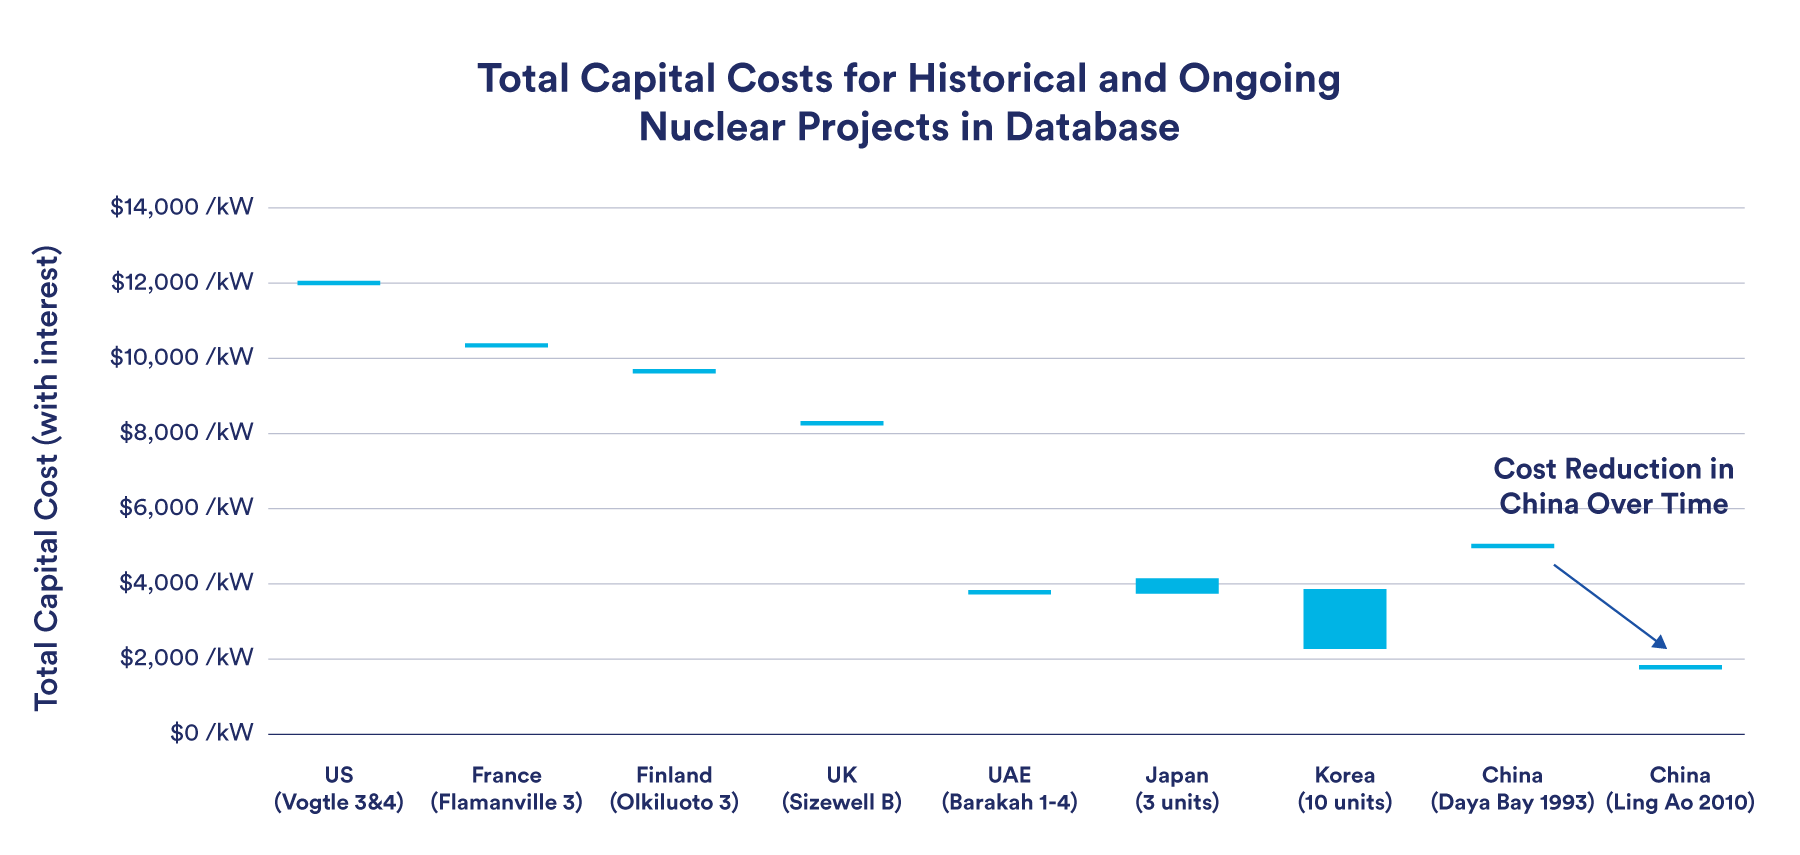 Nuclear capital cost graph